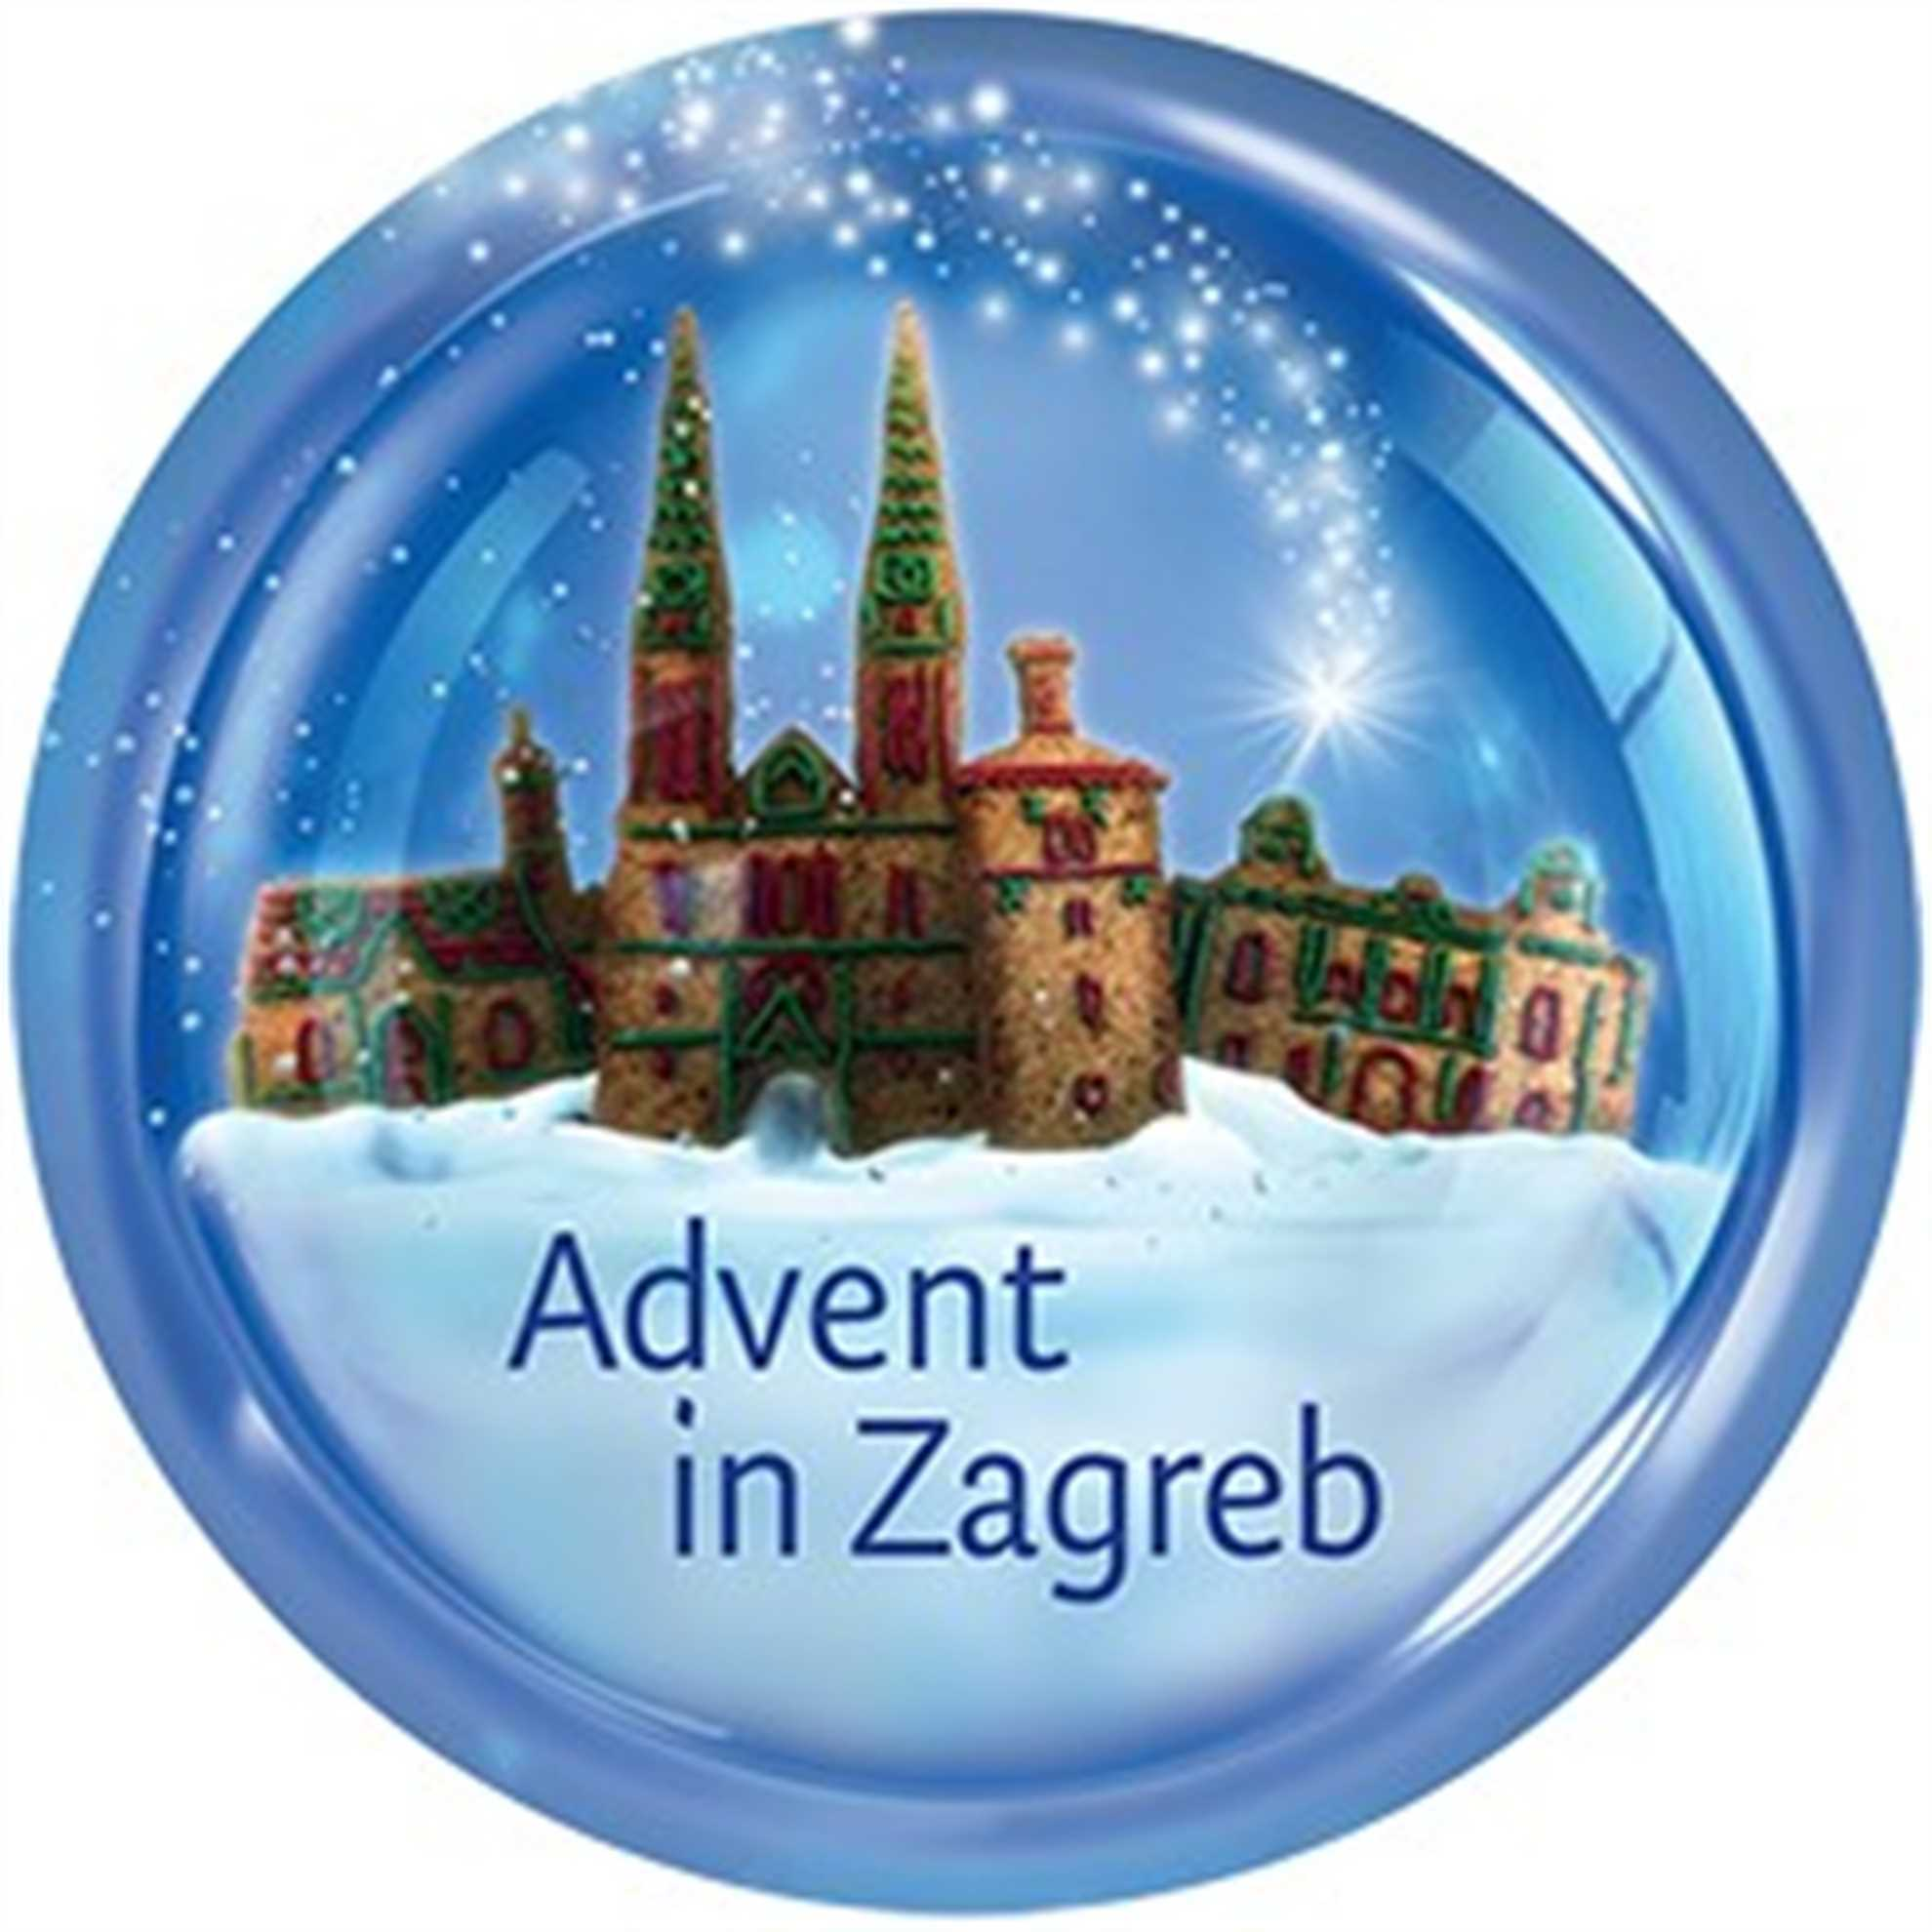 Advent in Zagreb badge